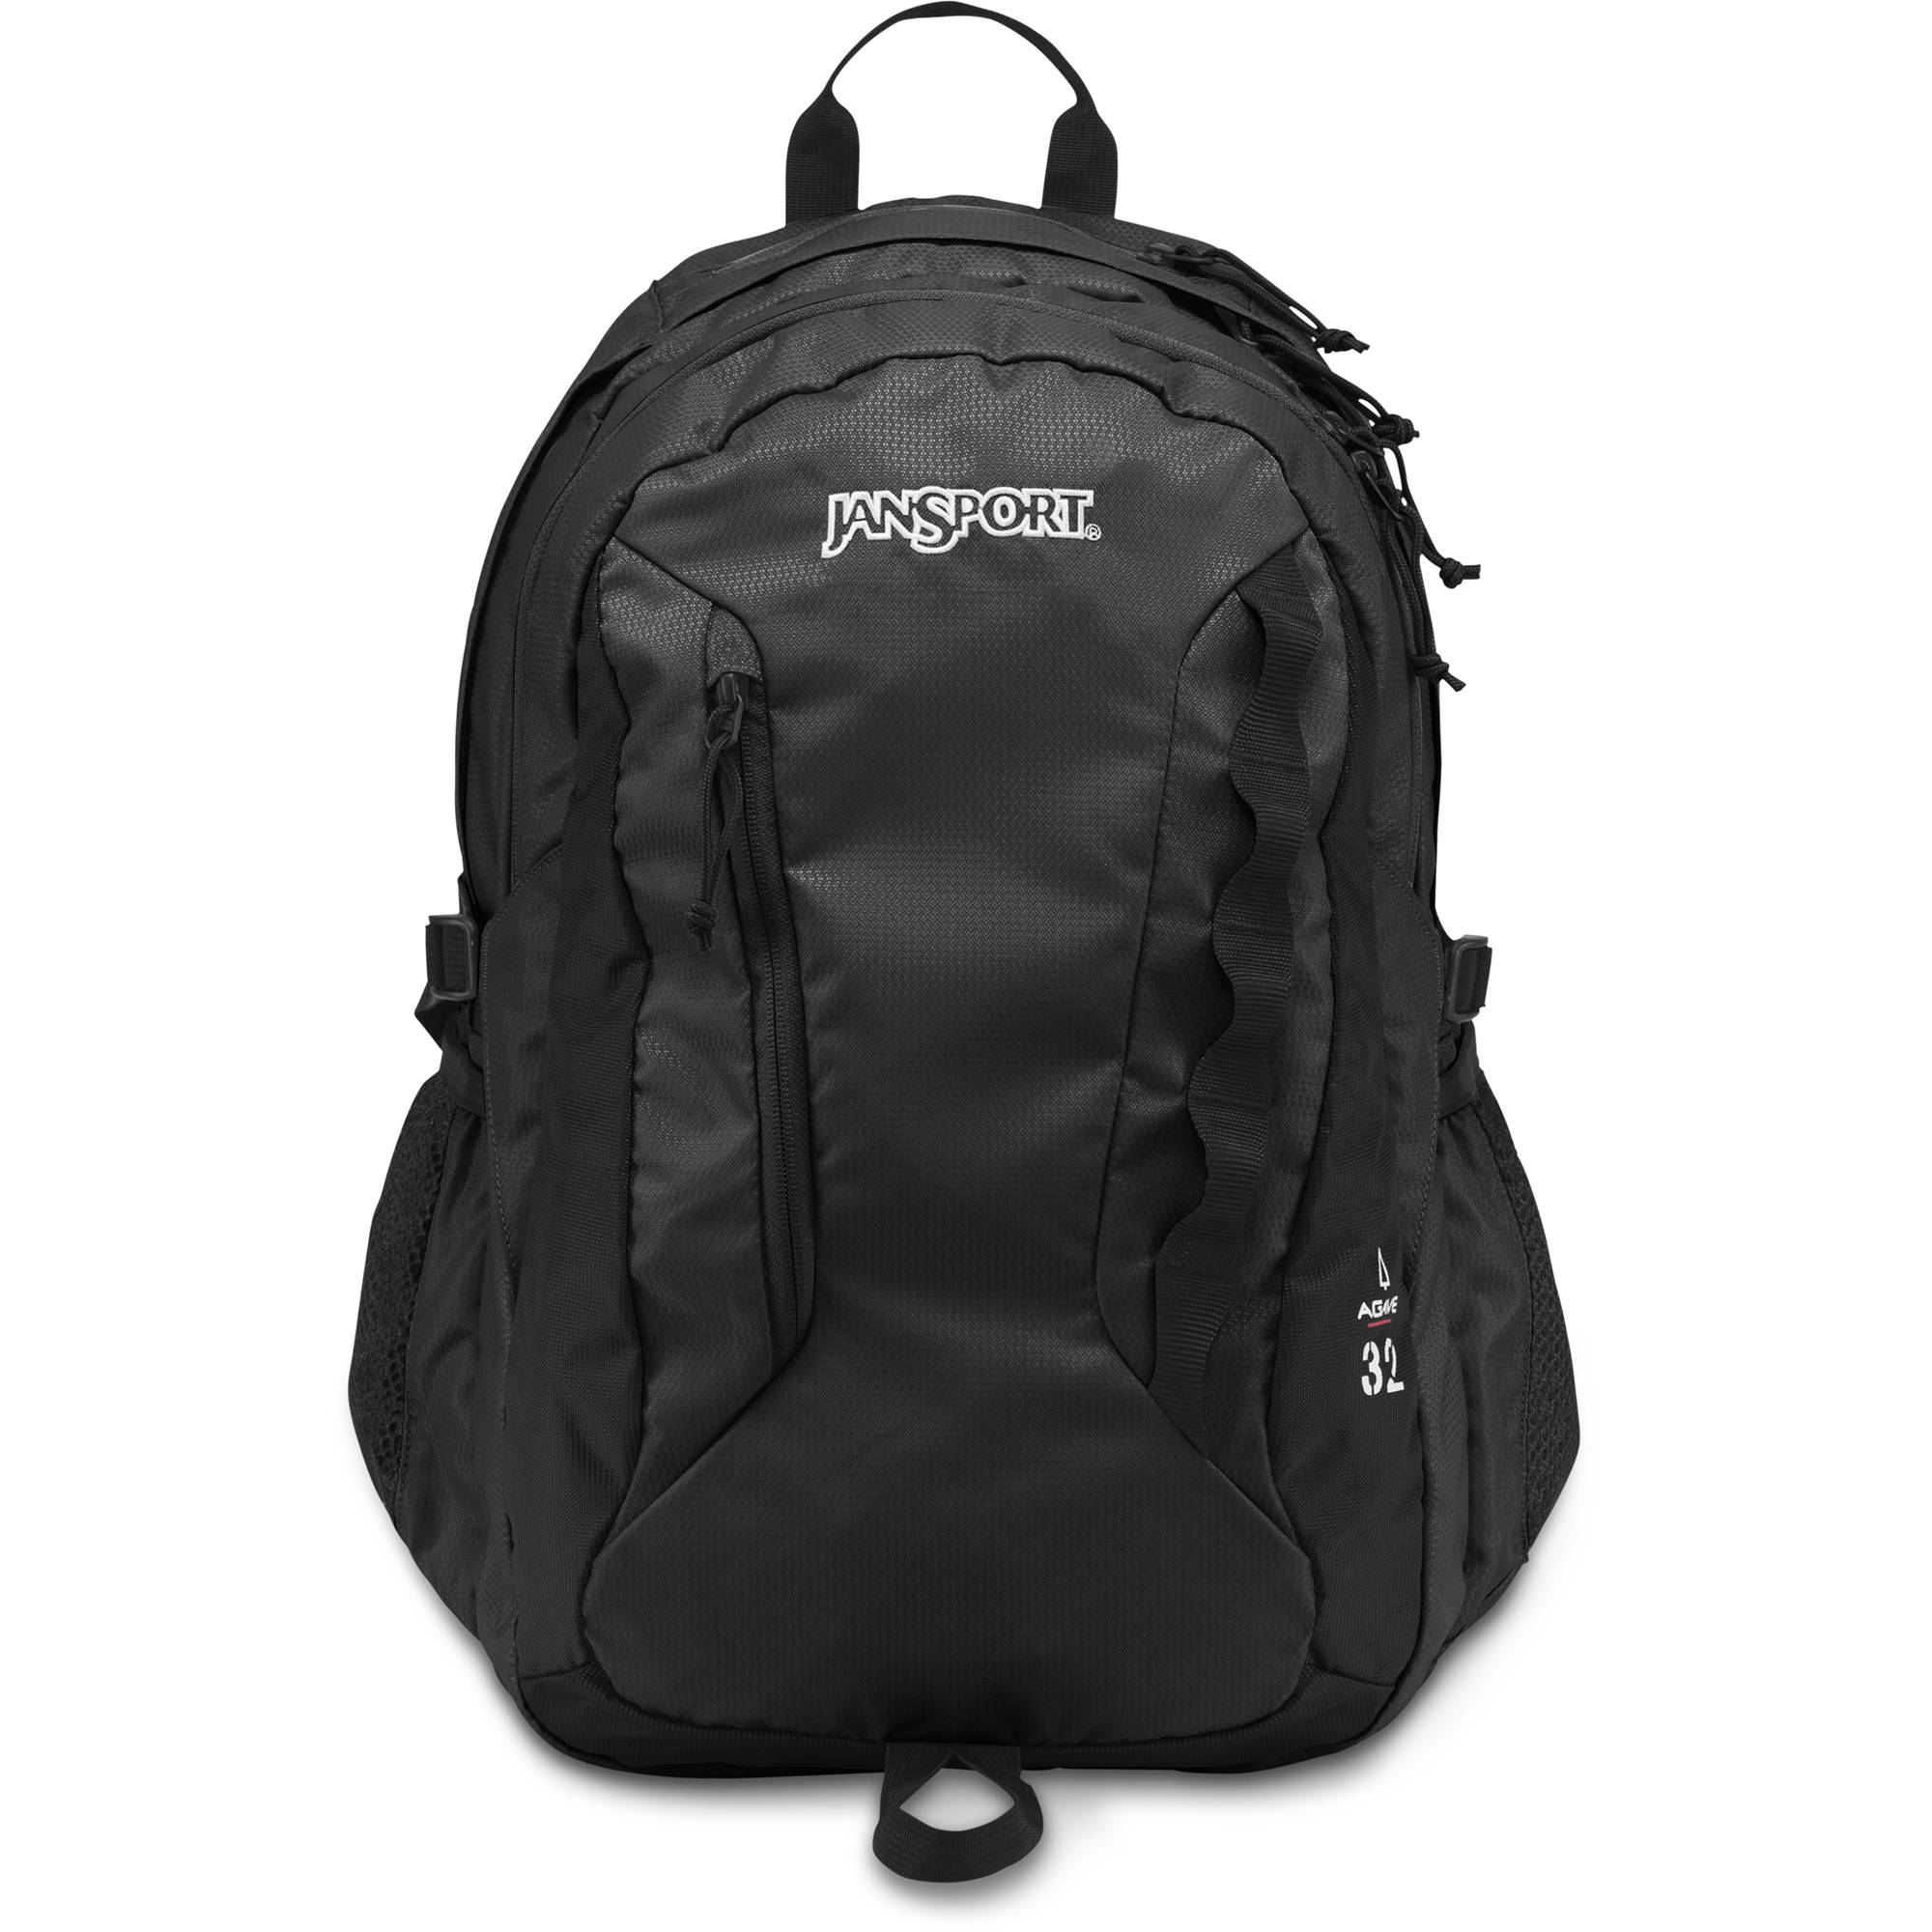 Jansport Single Strap Backpacks - Crazy Backpacks